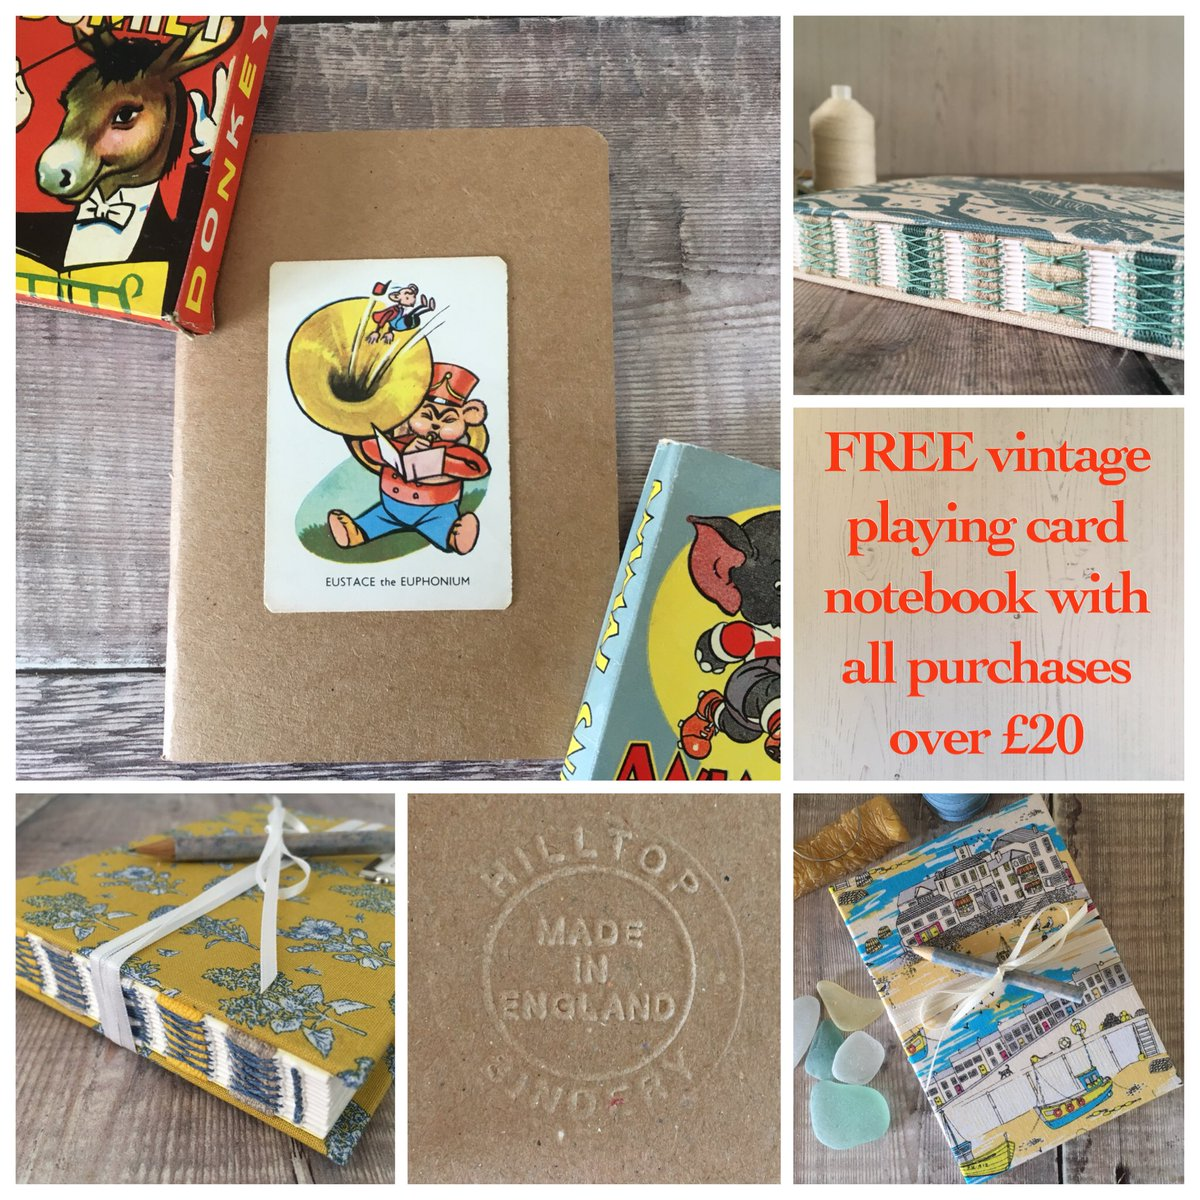 I'm giving away a free handmade notebook with all purchases over £20!  https://www. etsy.com/uk/shop/Hillto pBindery &nbsp; …  #crafthour #freebies #handmadehour<br>http://pic.twitter.com/eo8iUMBlO6